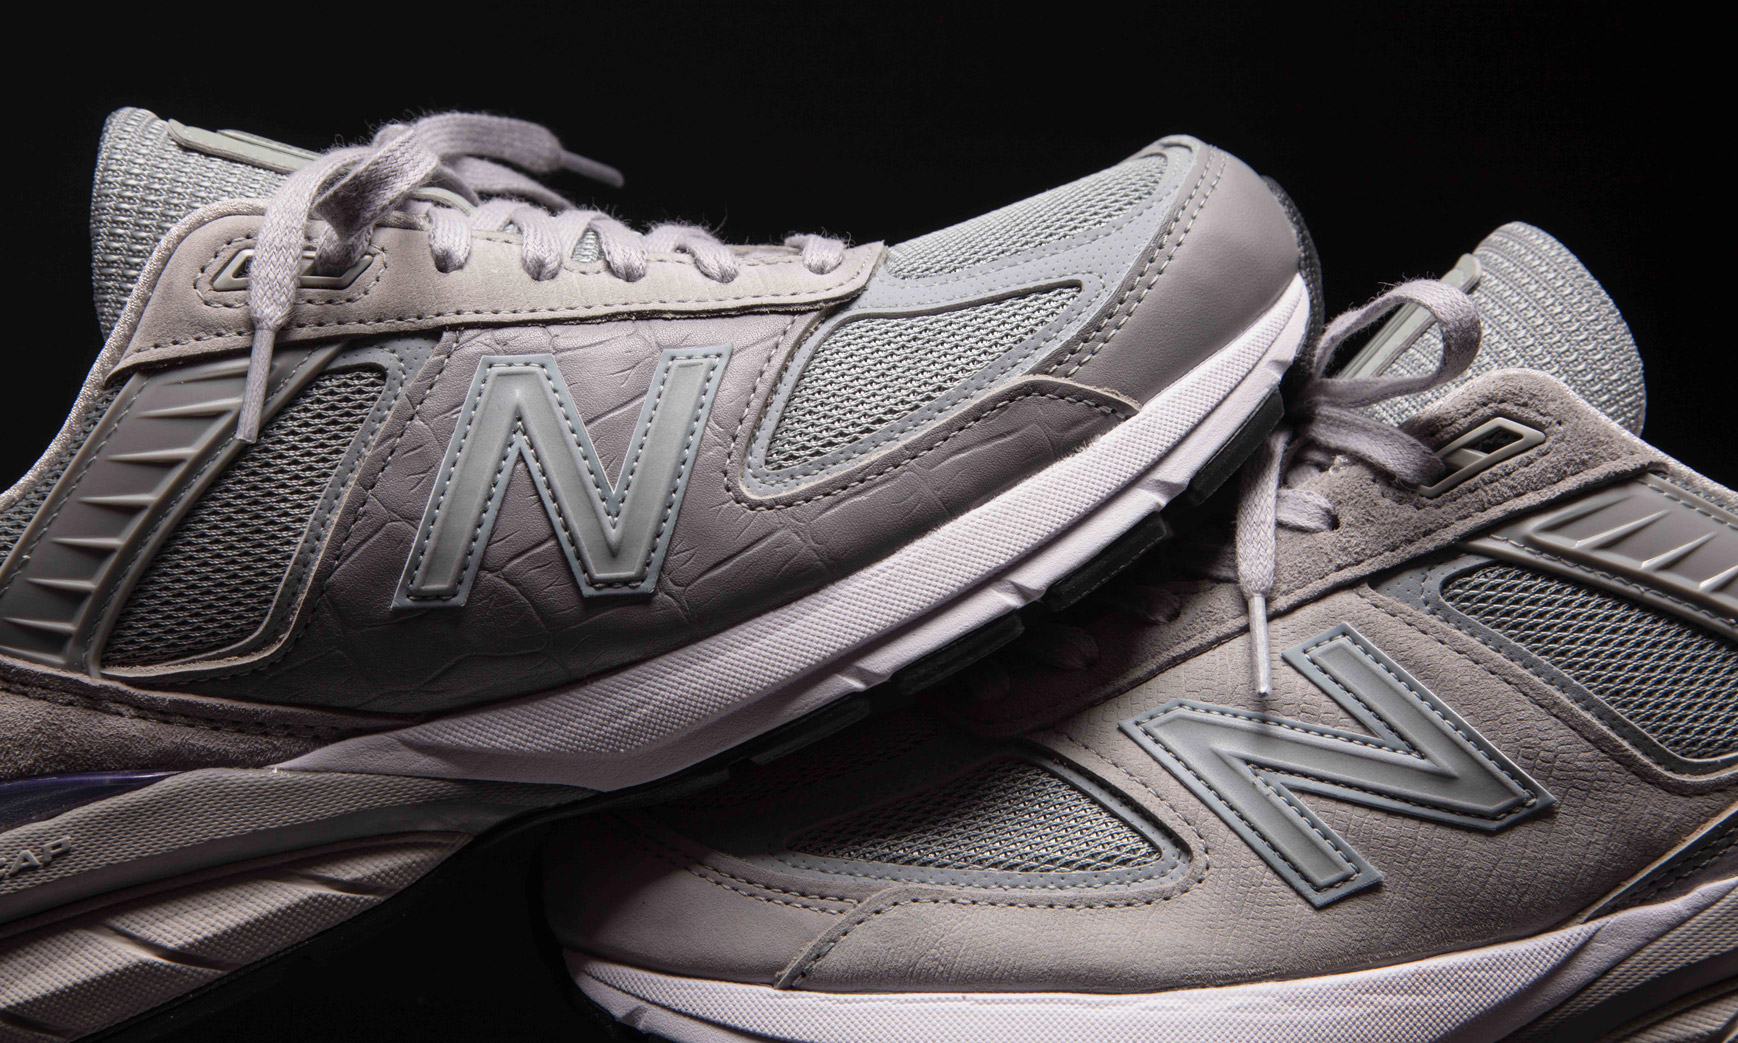 致敬工匠精神,Engineered Garments x New Balance 990v5 联名系列即将发售